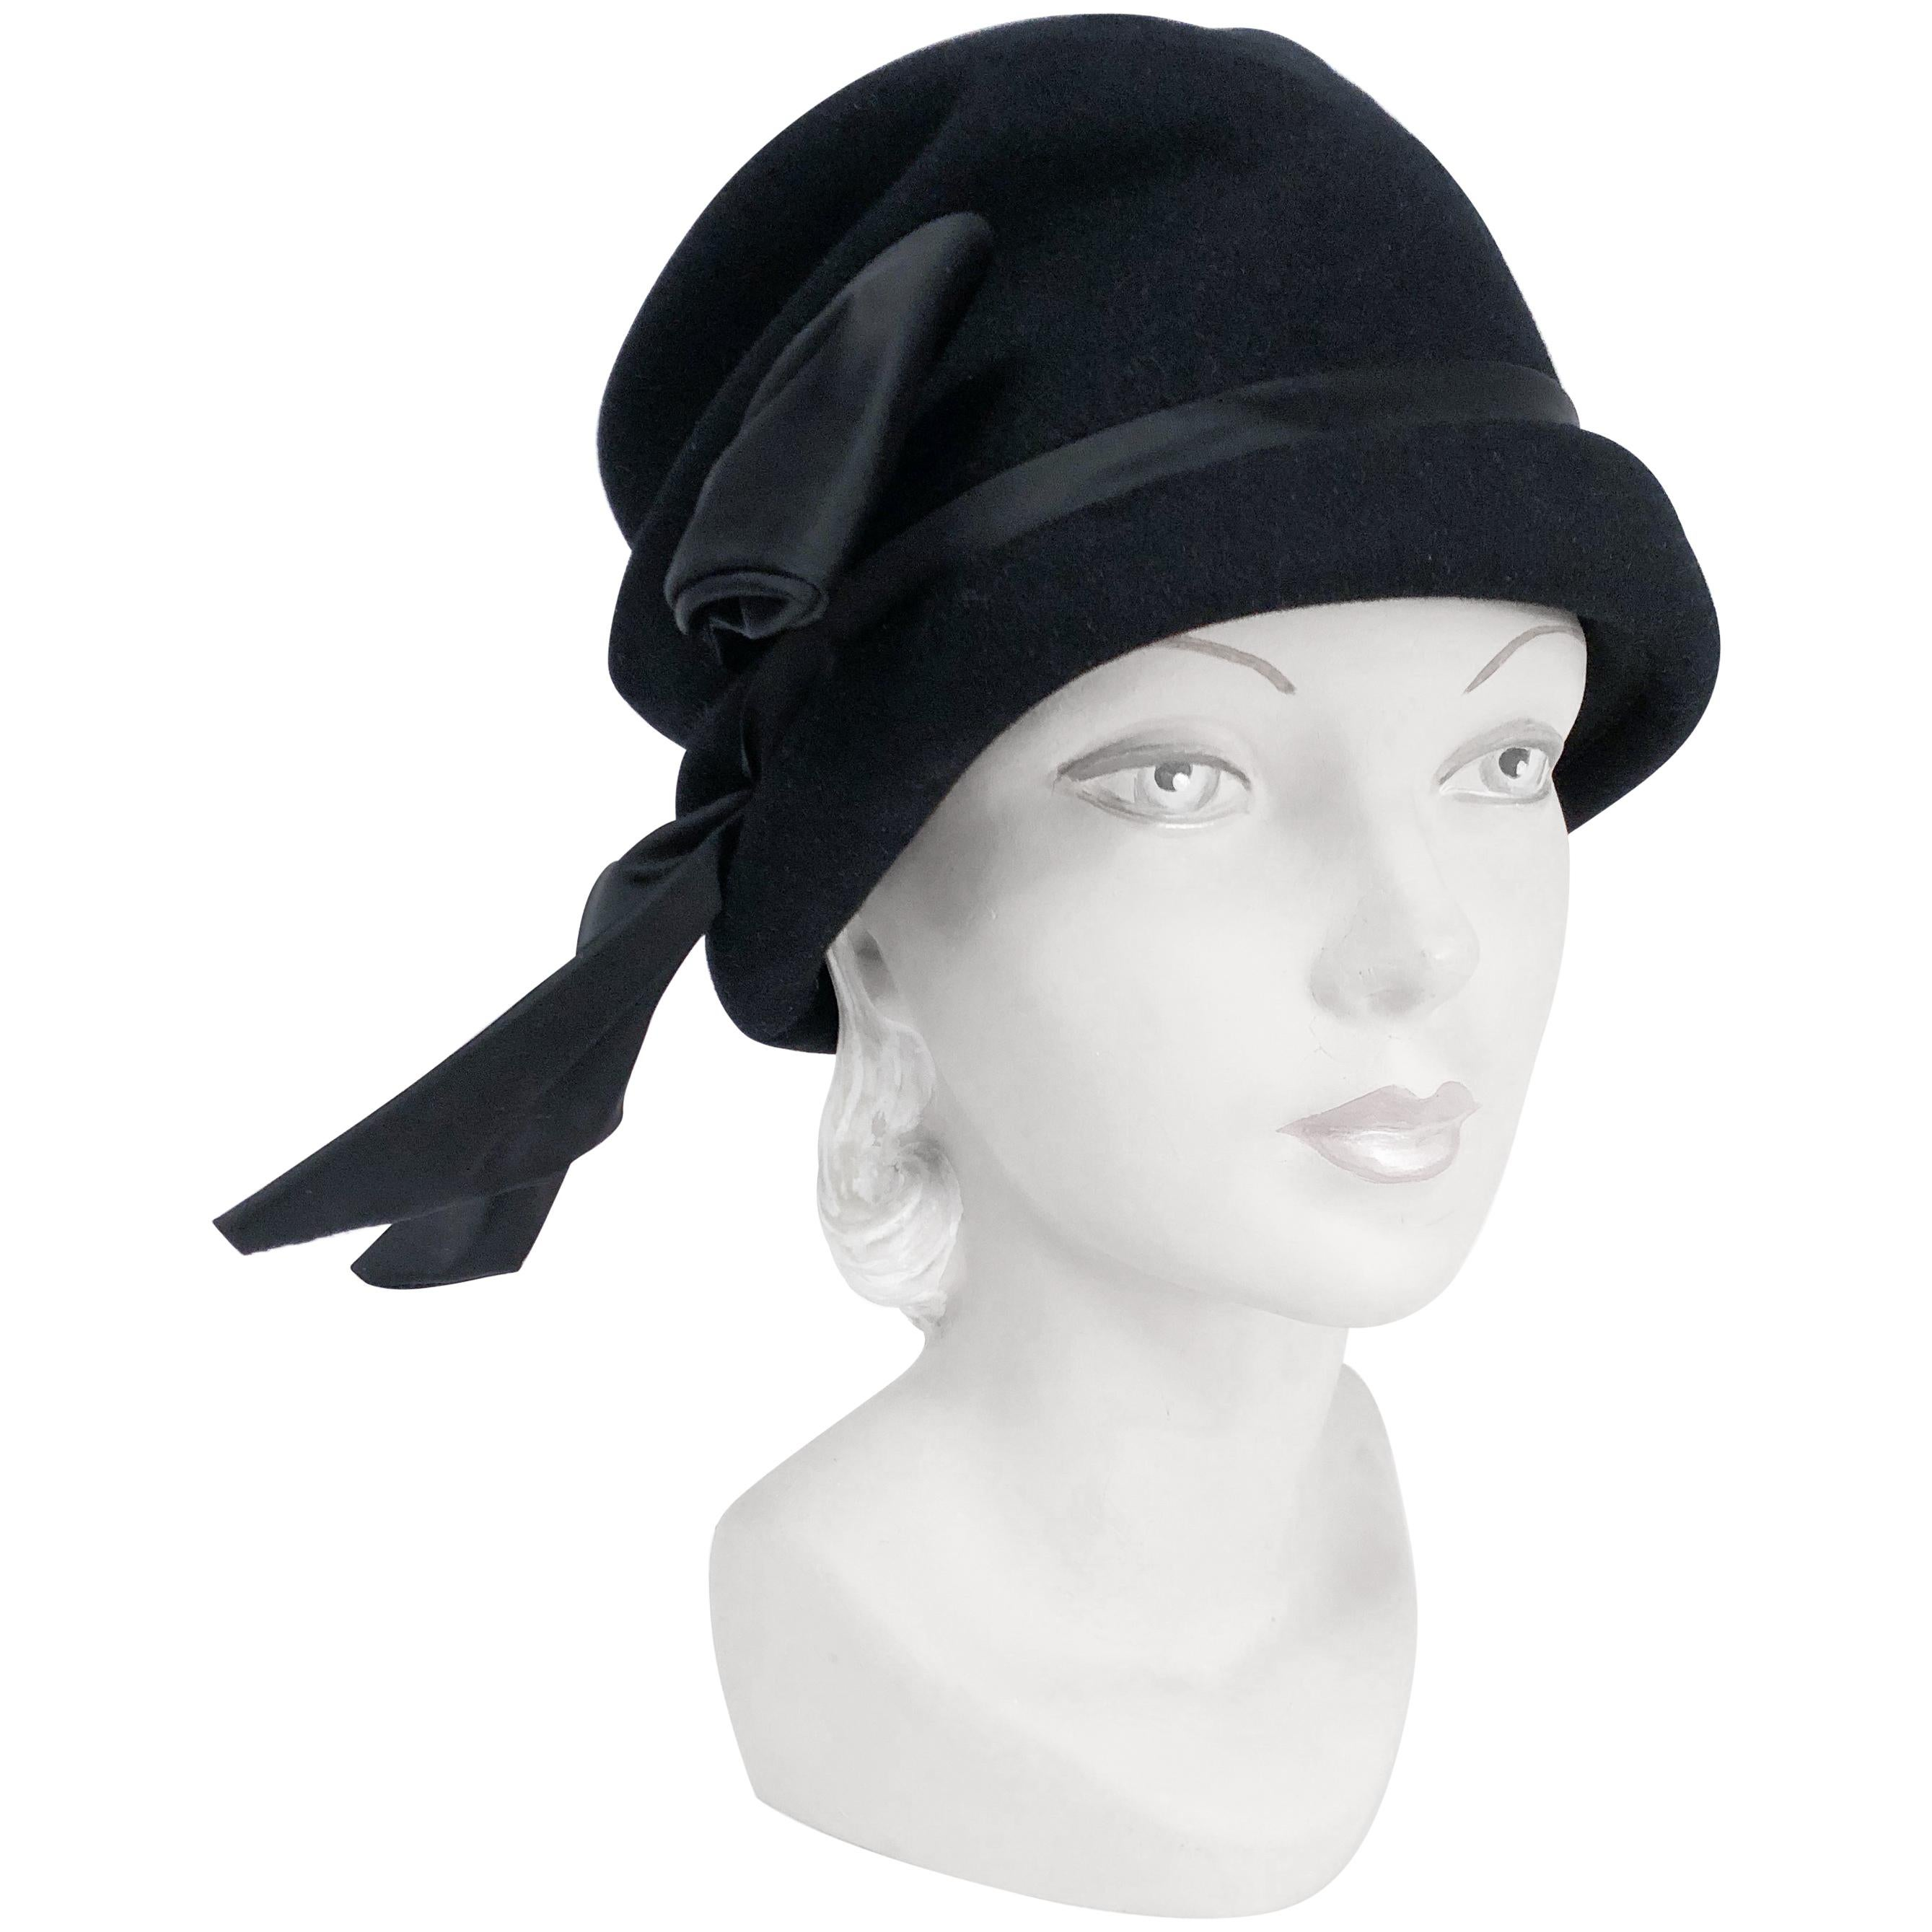 a28cc941280 Cloche Hats - 71 For Sale on 1stdibs